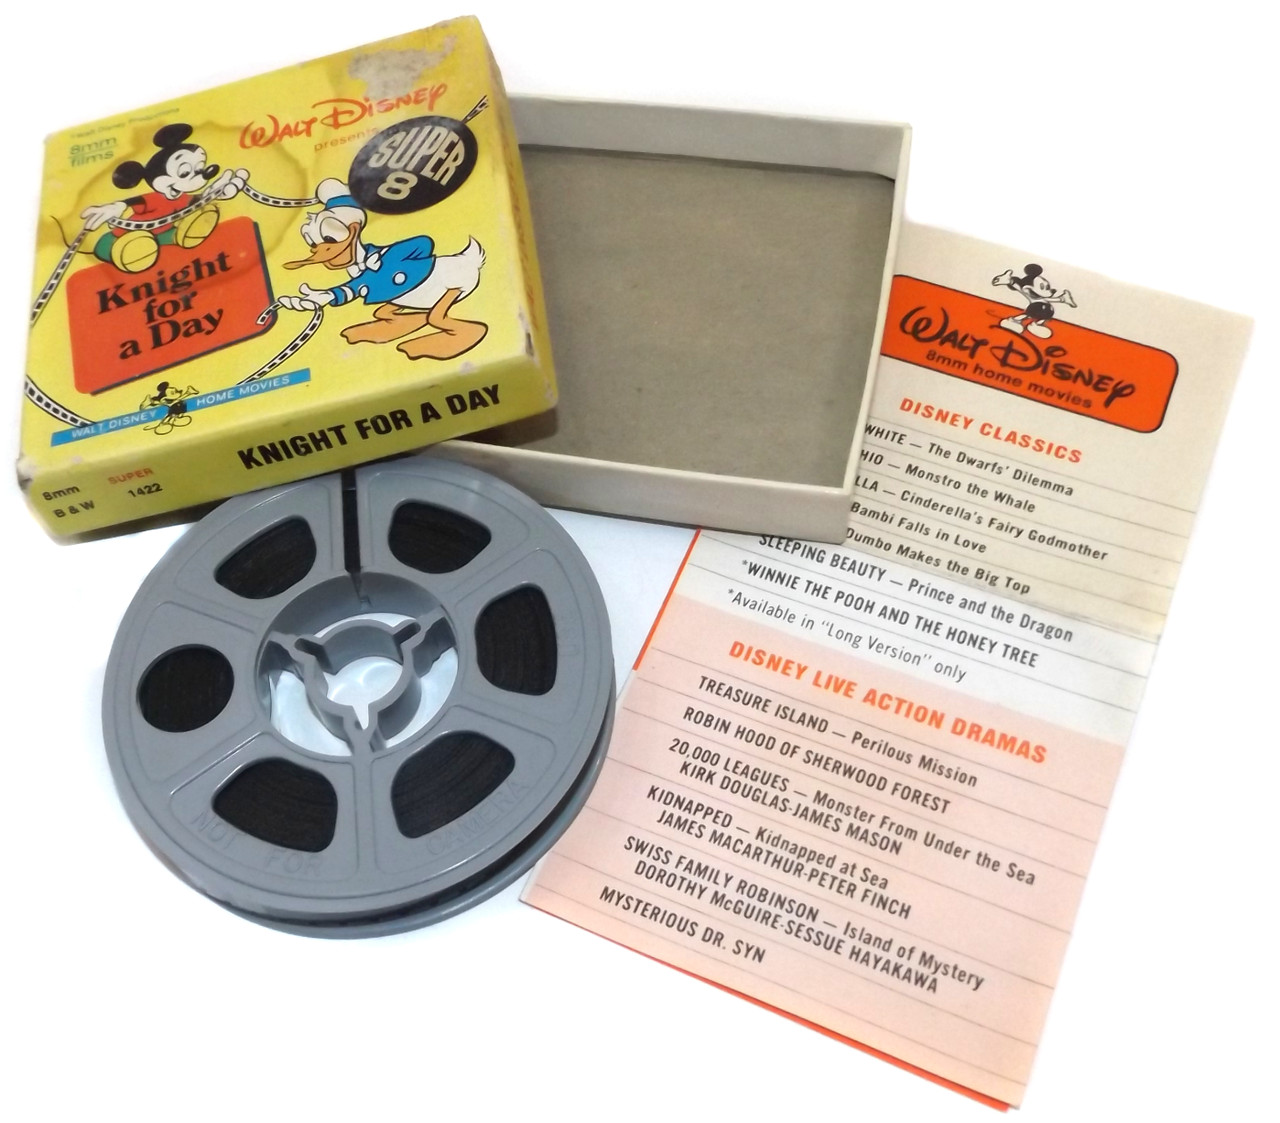 Vintage Walt Disney #1422 Knight for a Day Super 8mm Film Home Movie in Box